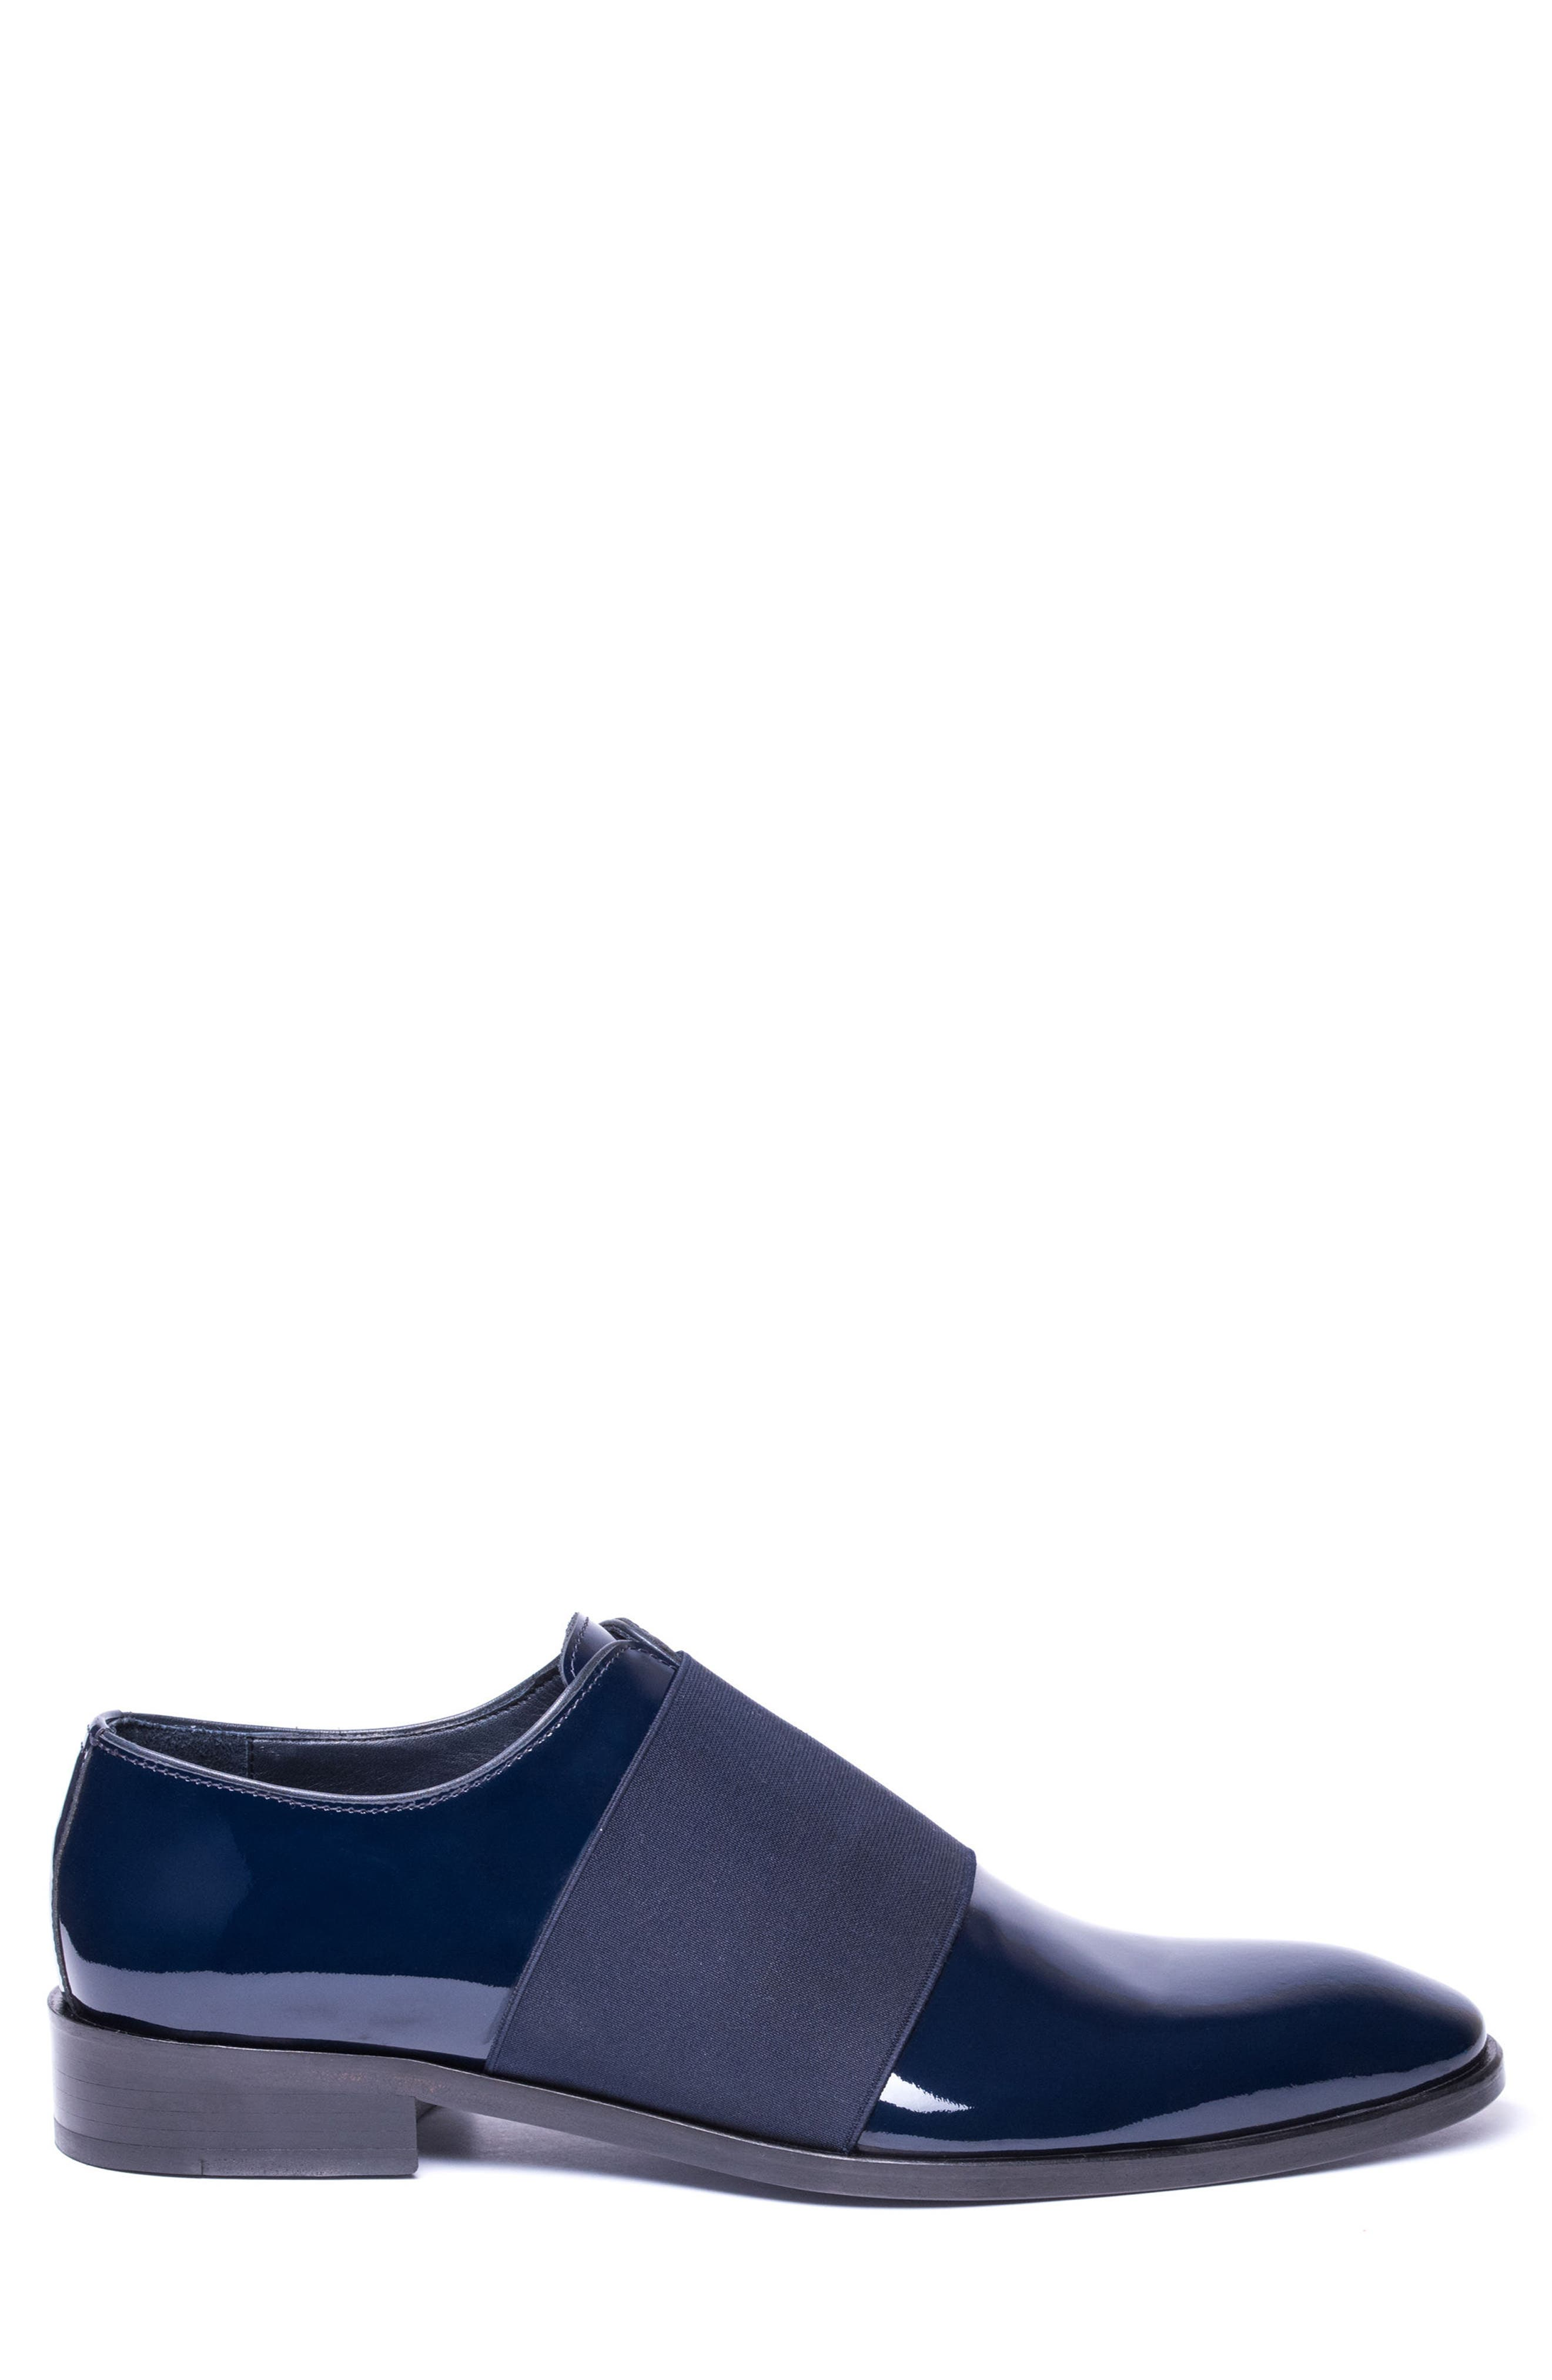 Vincenzo Whole Cut Slip-On,                             Alternate thumbnail 3, color,                             Navy Leather